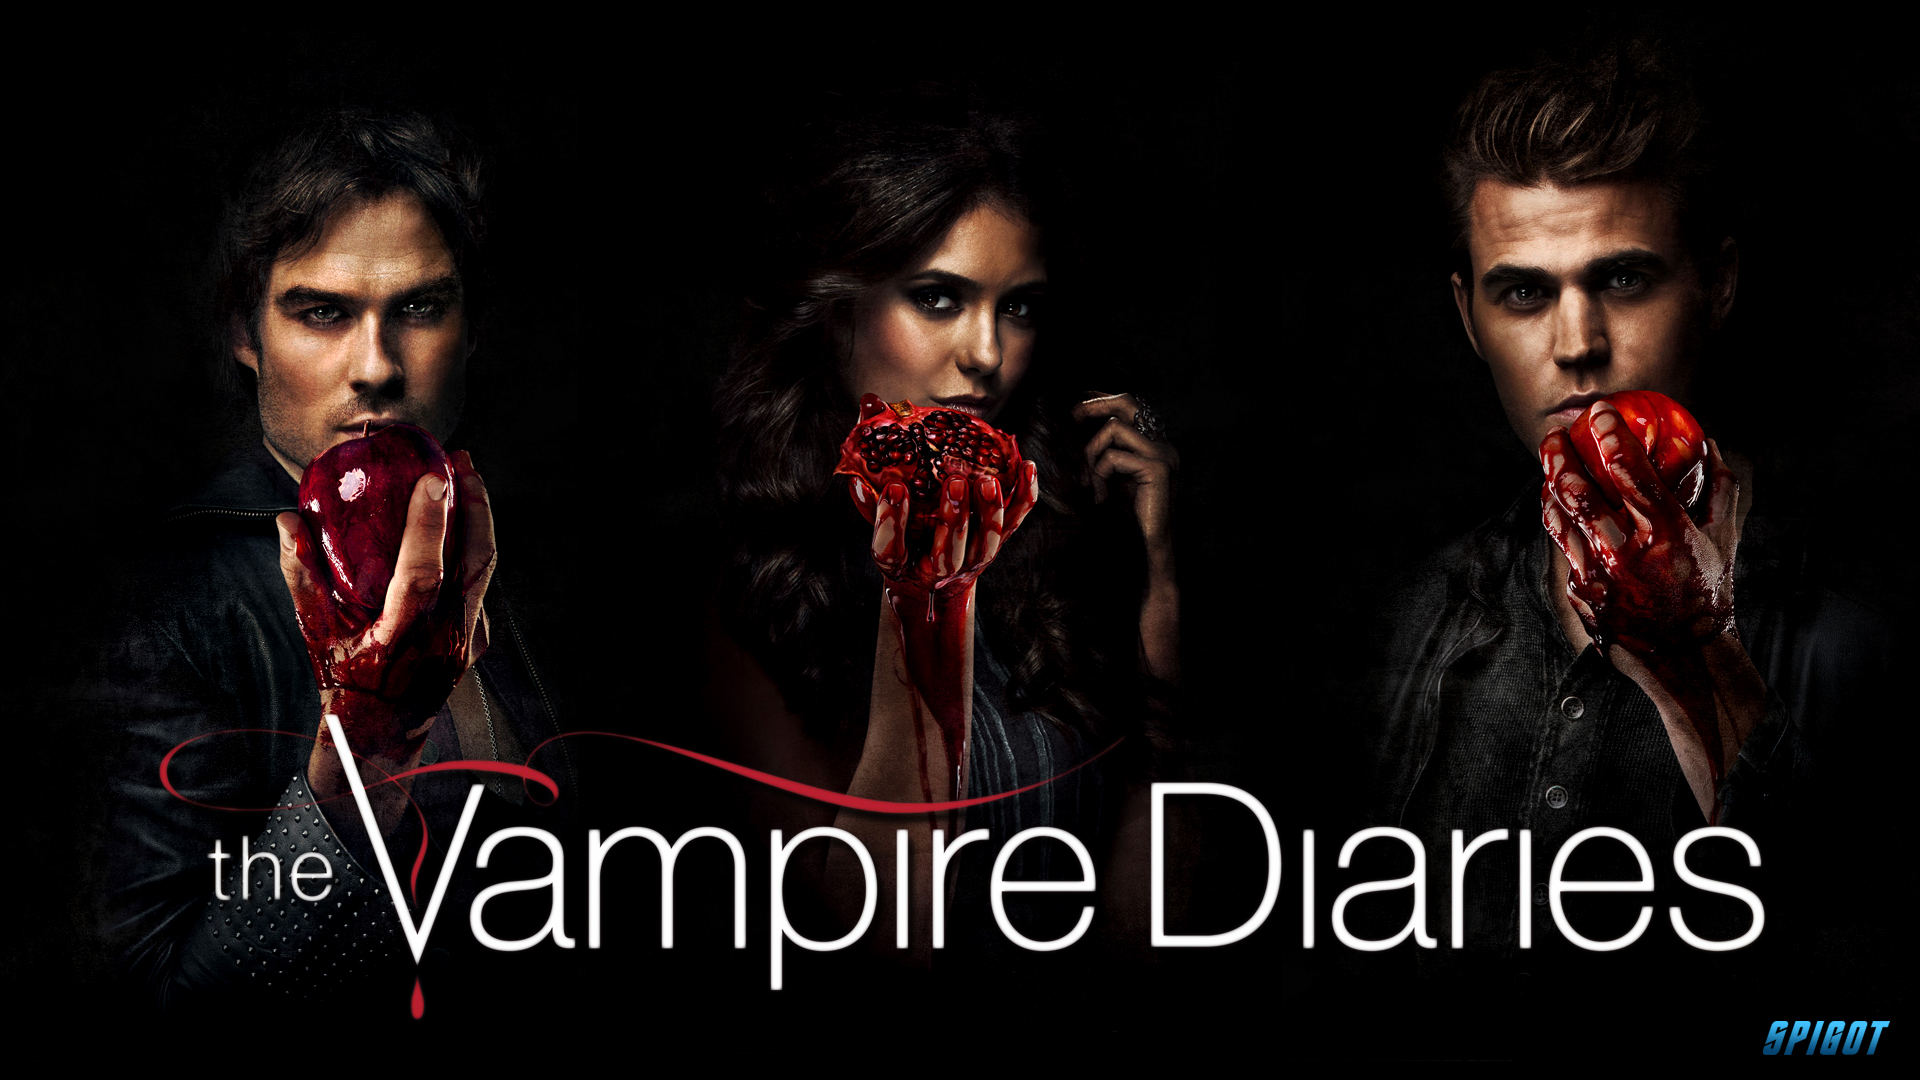 43+ Top Ranked The Vampire Diaries Wallpapers, PC-YQI9696, HQ